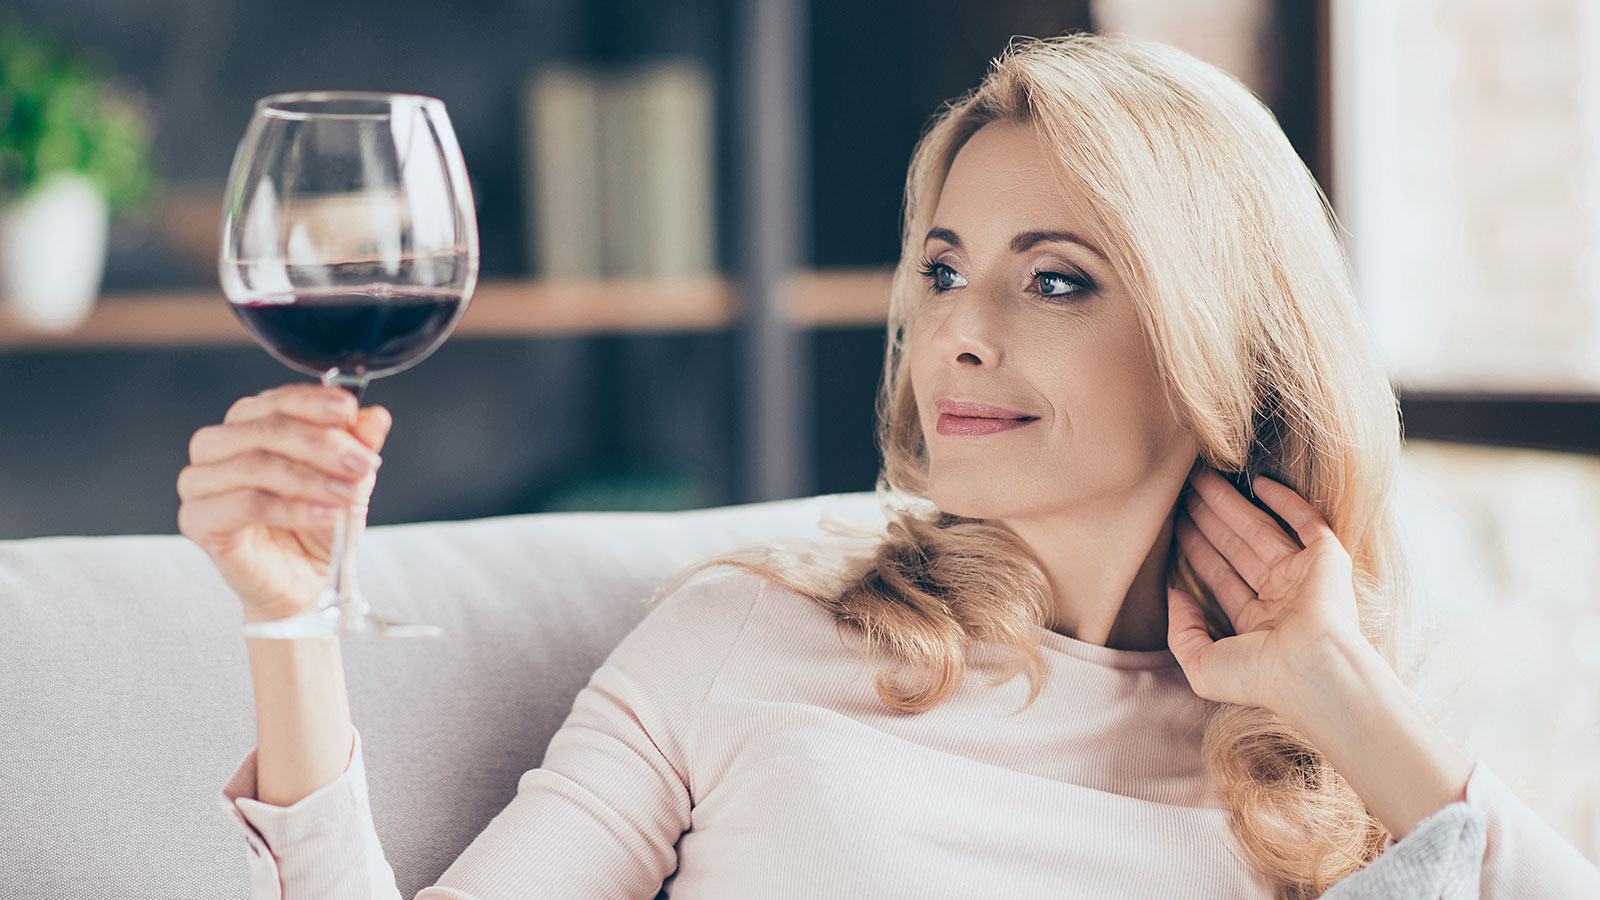 Quitting alcohol completely may greatly increase your mental well-being, especially for women